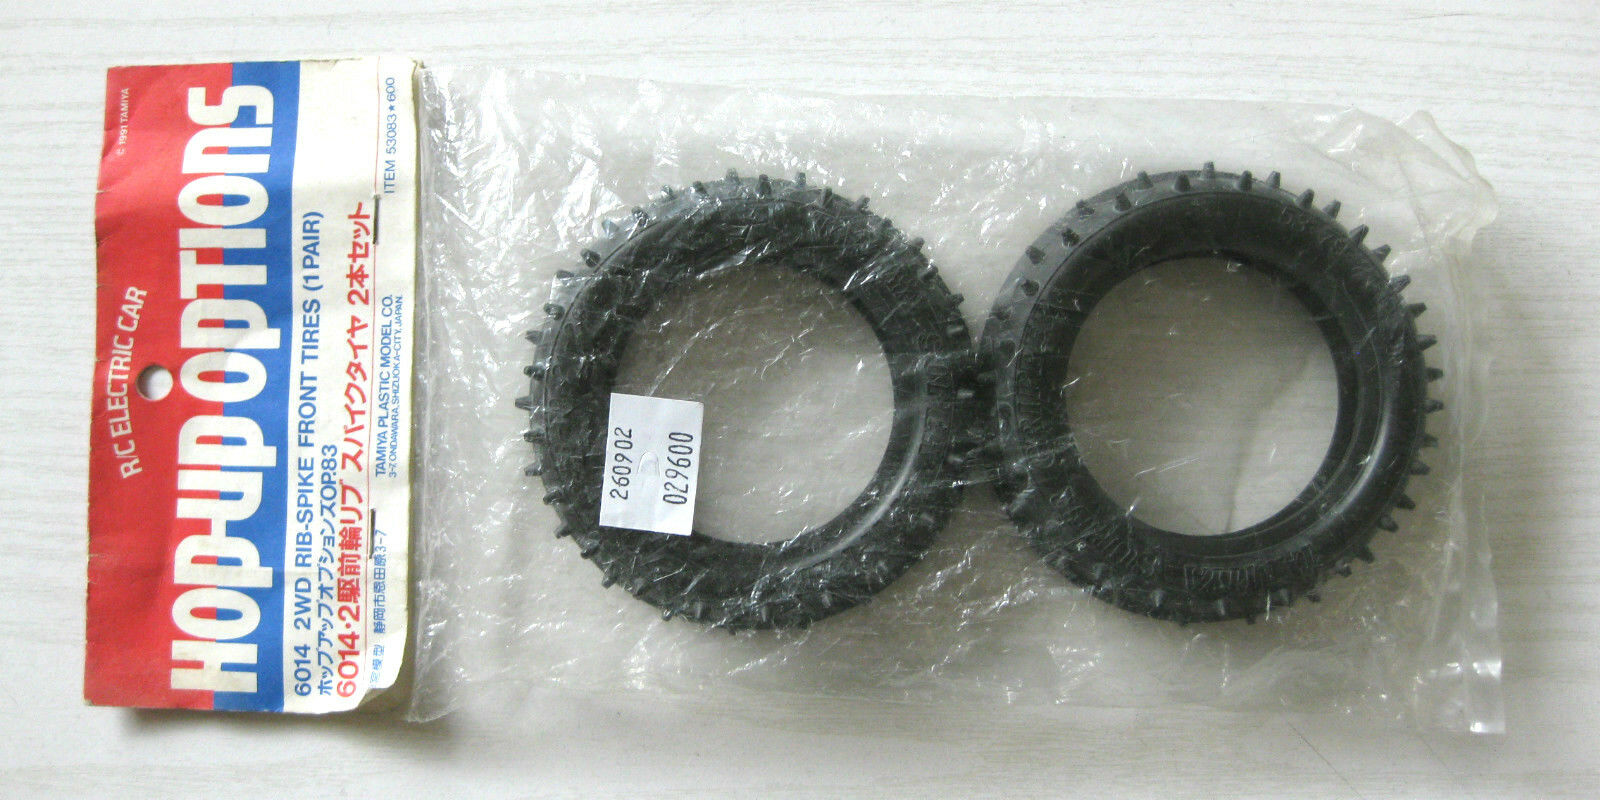 Tamiya Vintage Dyna Storm Rib-Spike Front Tires 53083 ULTRA RARE 58116 49190 RC